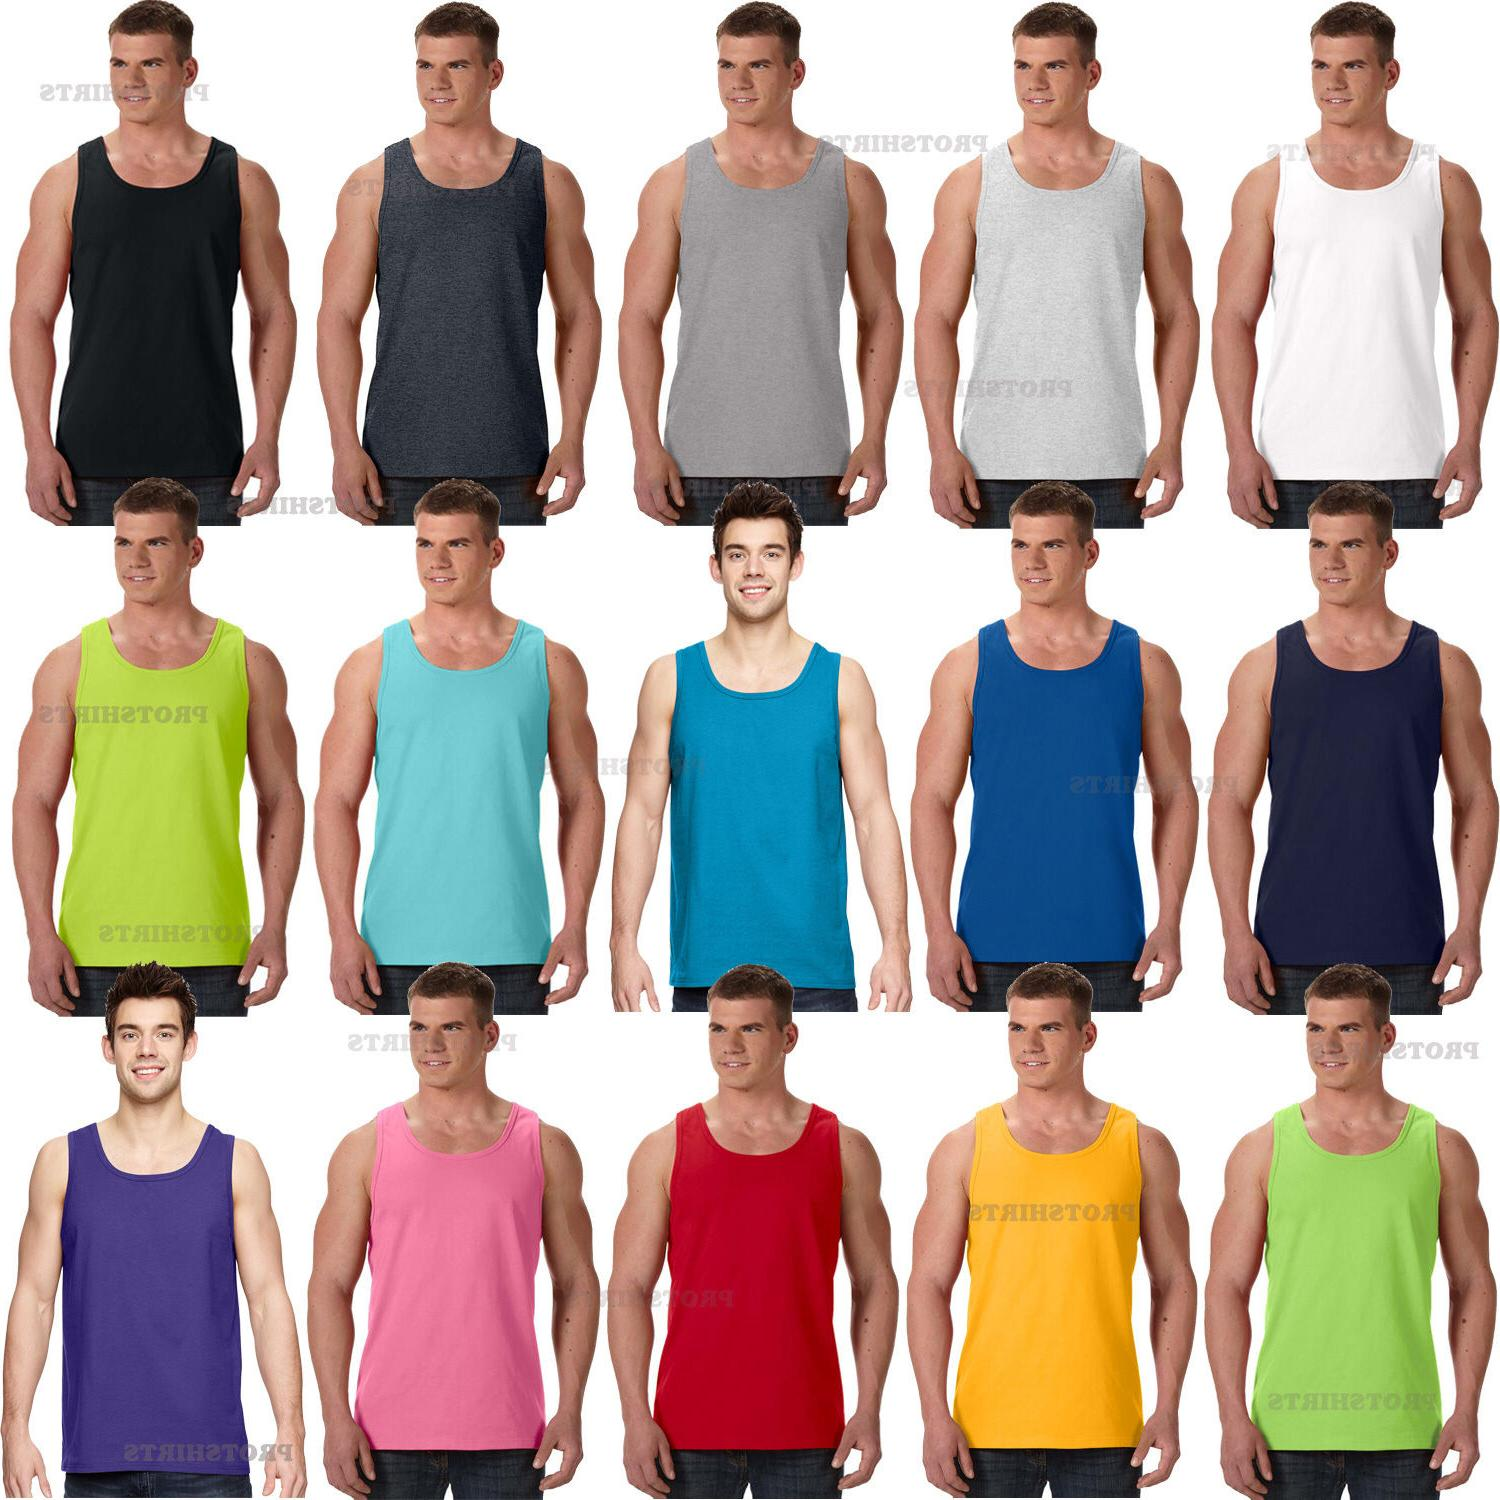 Fruit of the Loom - 100% cotton HD Cotton Men's Tank Top - 3